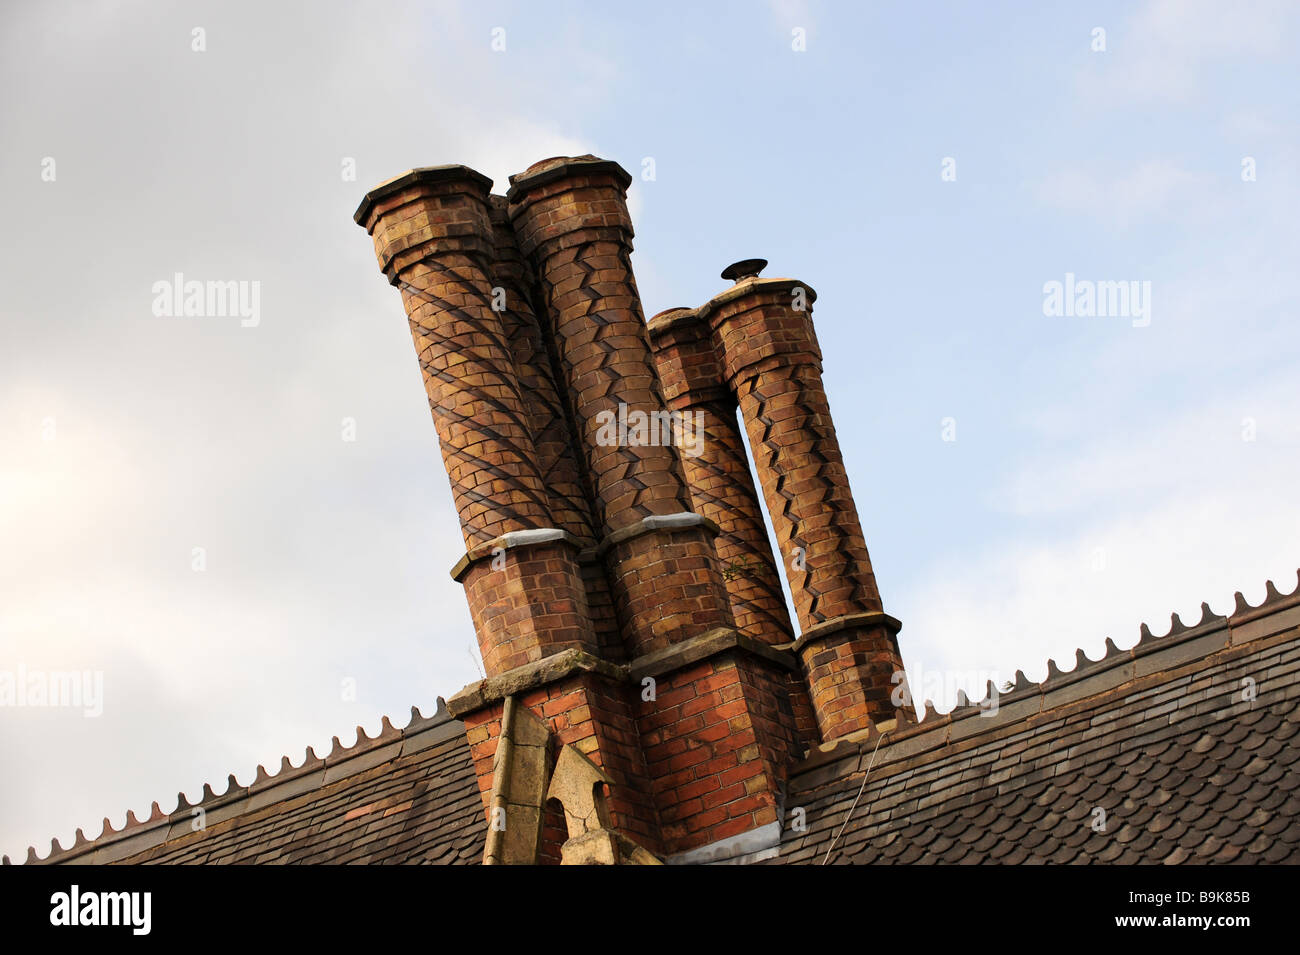 Decorative Chimney Stacks With Spiral Effect In Ironbridge Shropshire  England Uk   Stock Image